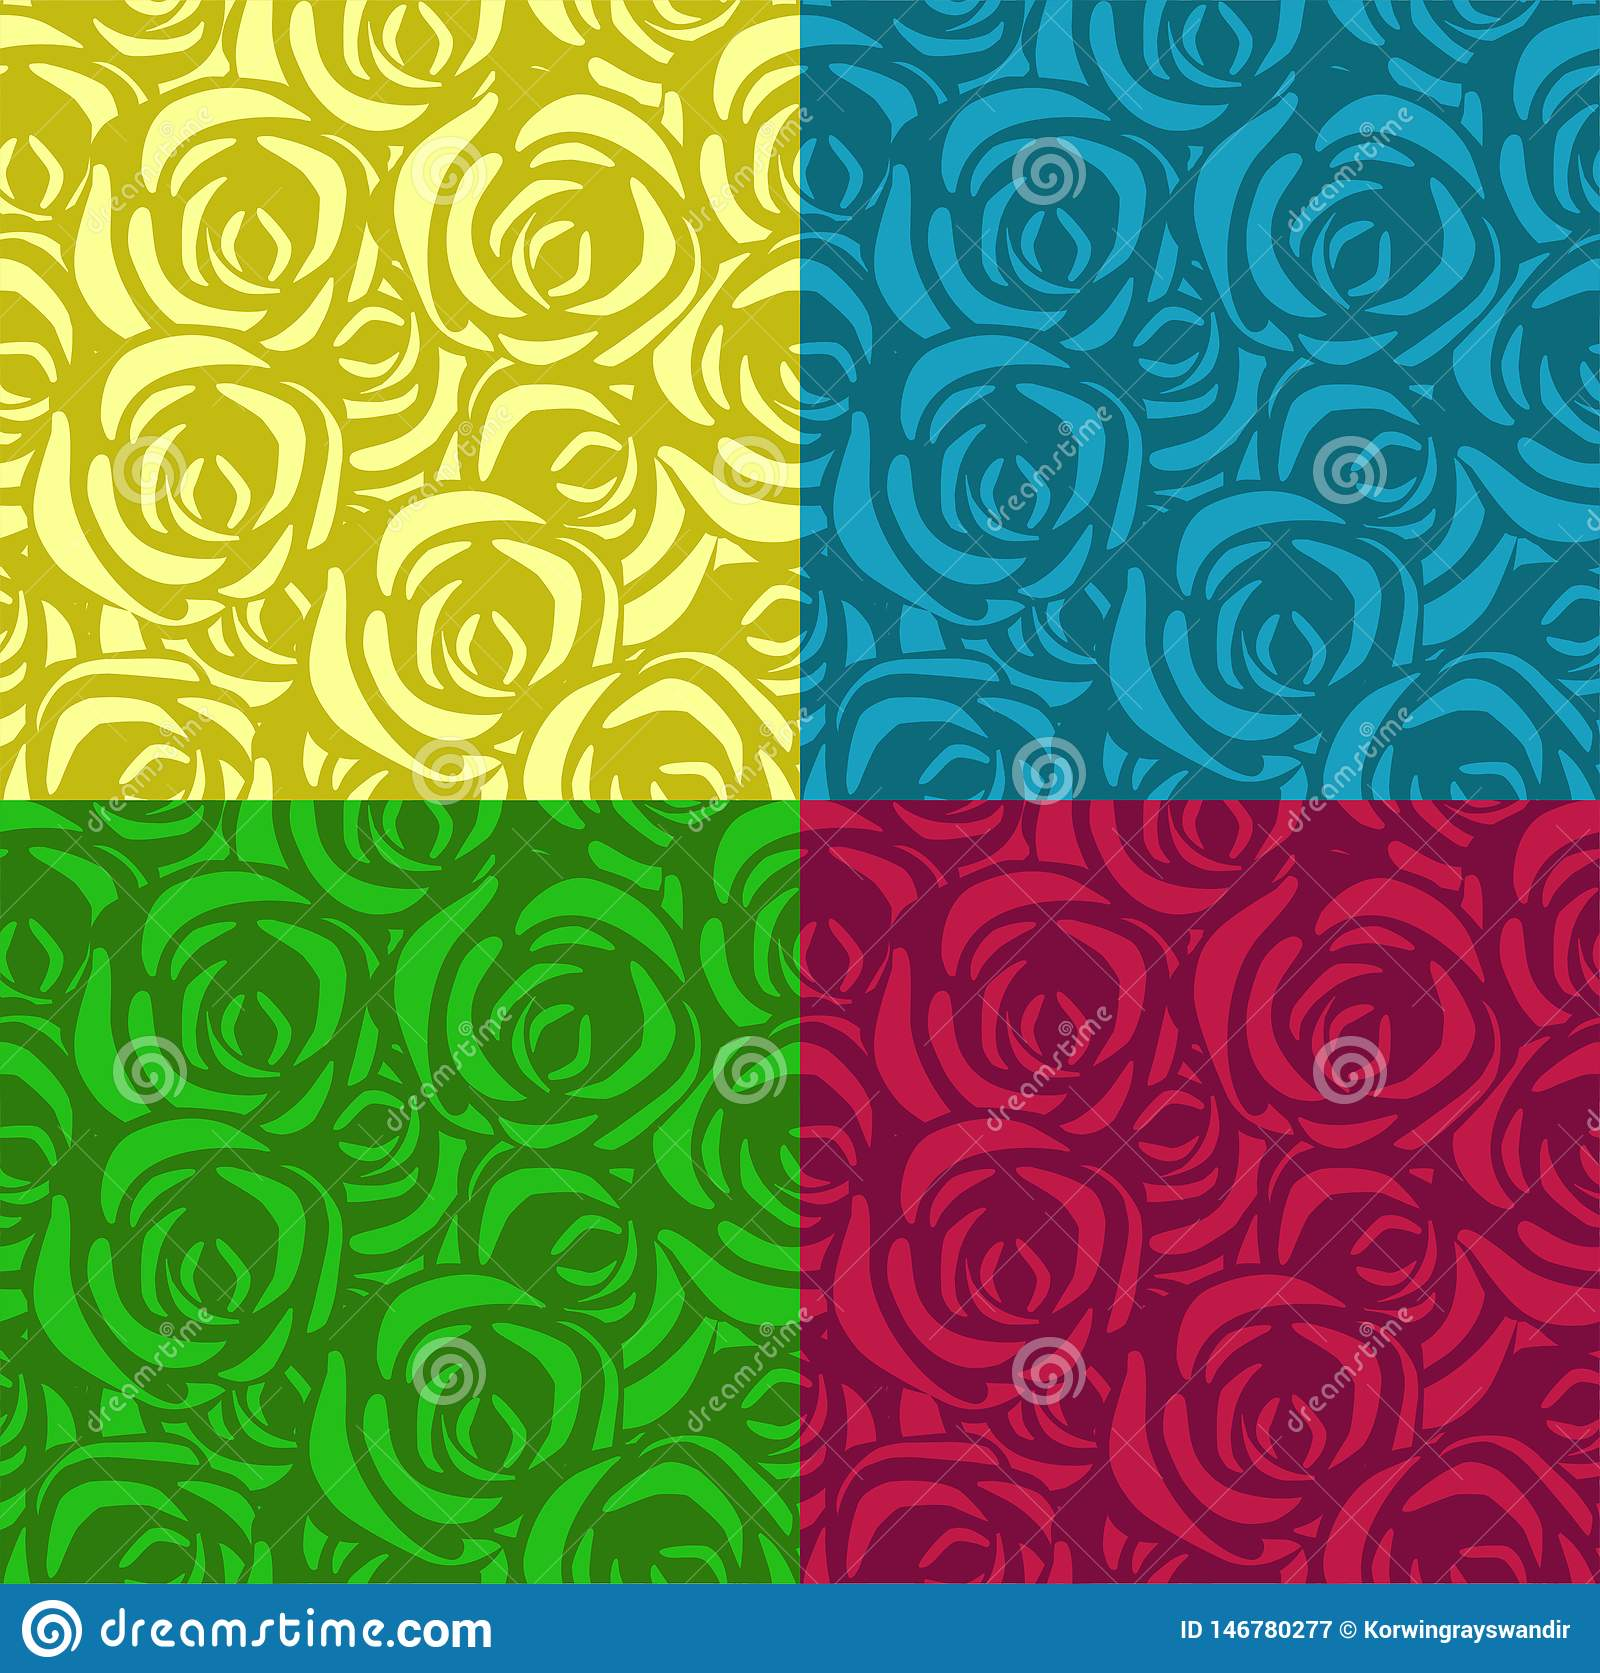 Set of seamless patterns with roses in different colors. Applicable for textiles, wrapping paper and other. Vector